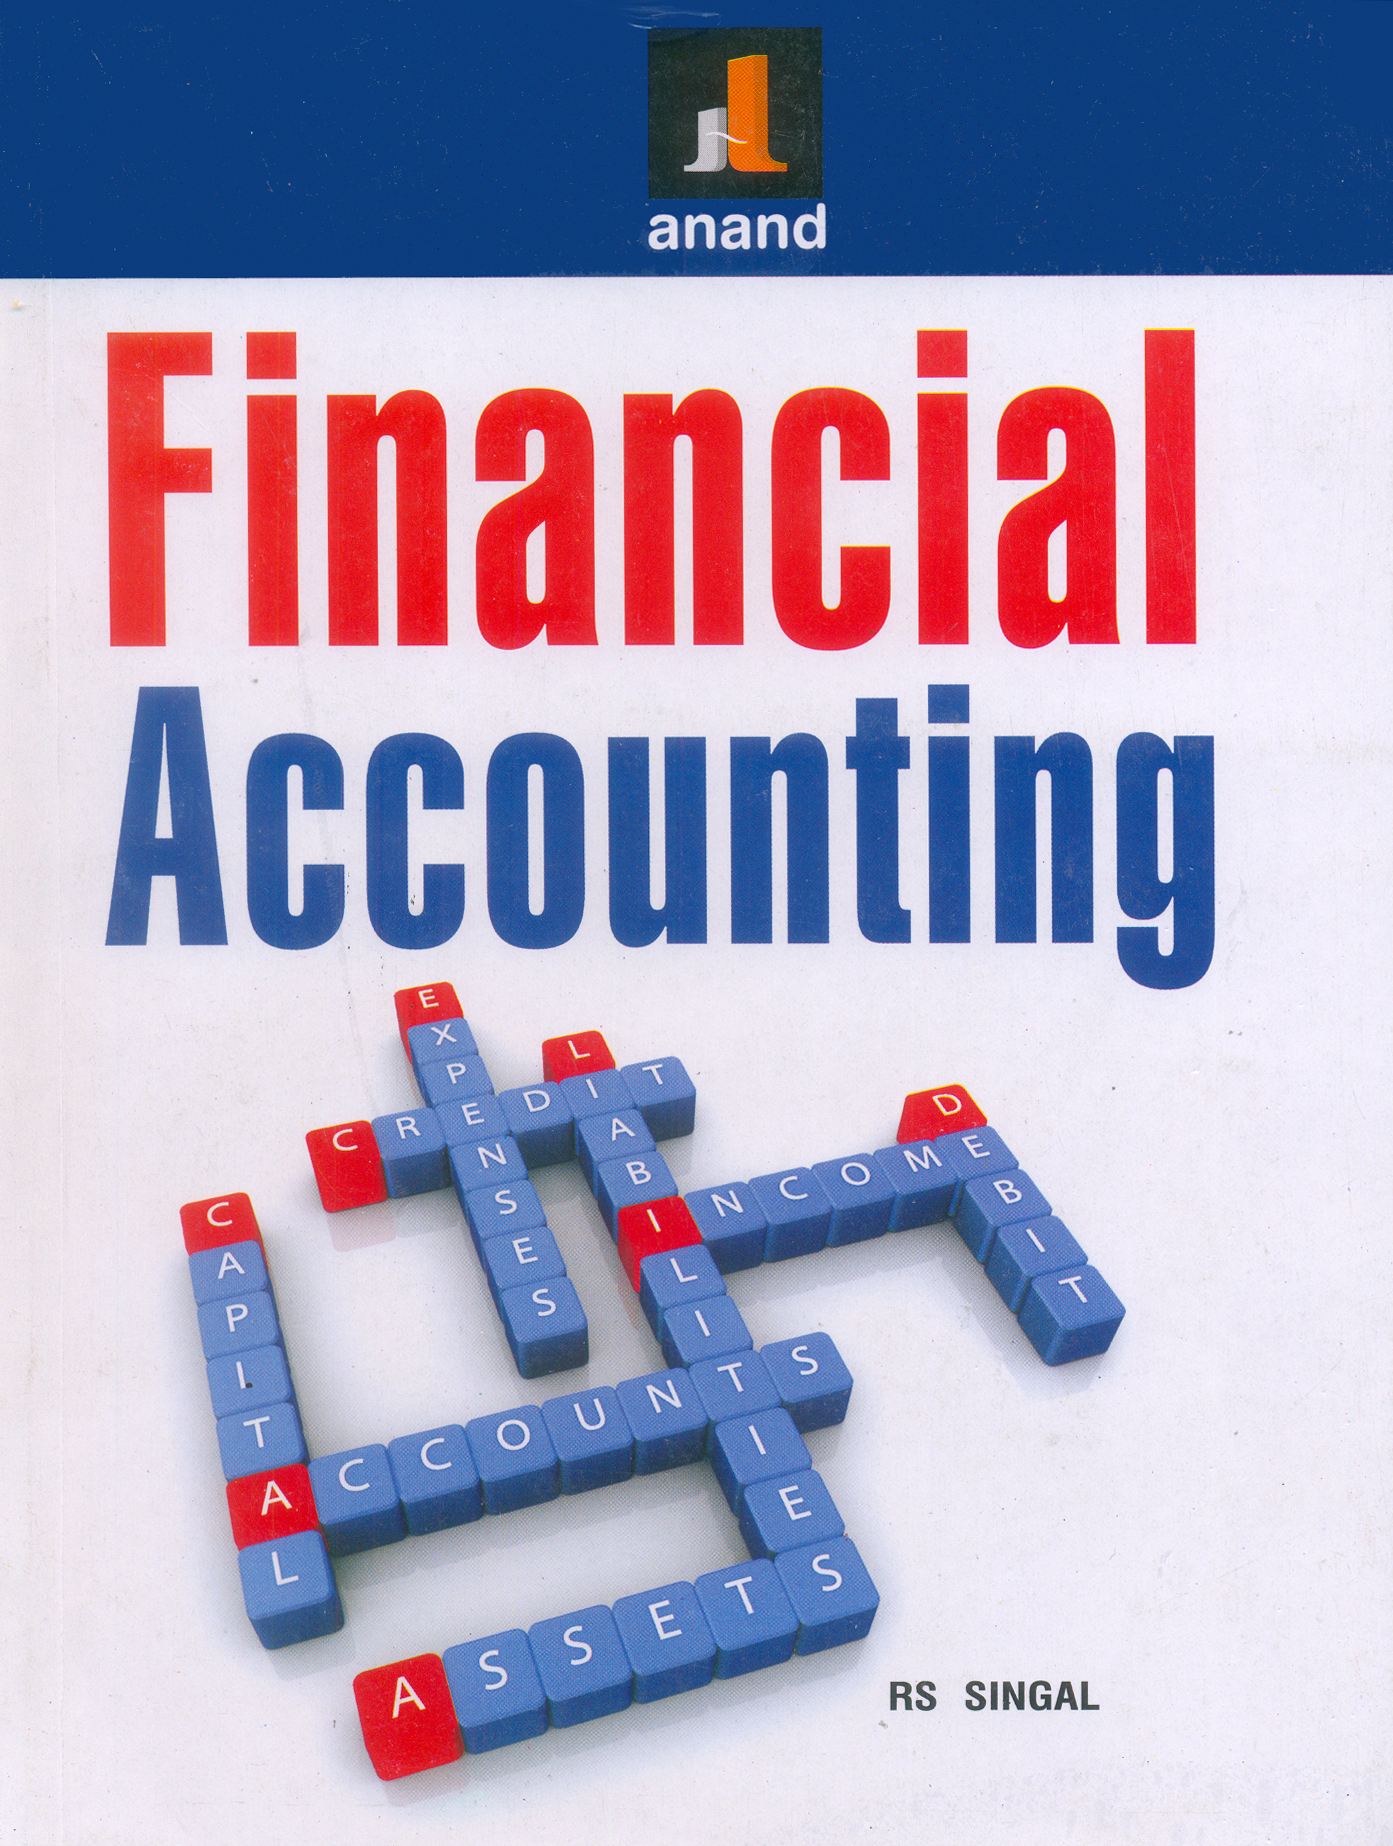 104 Financial Accounting